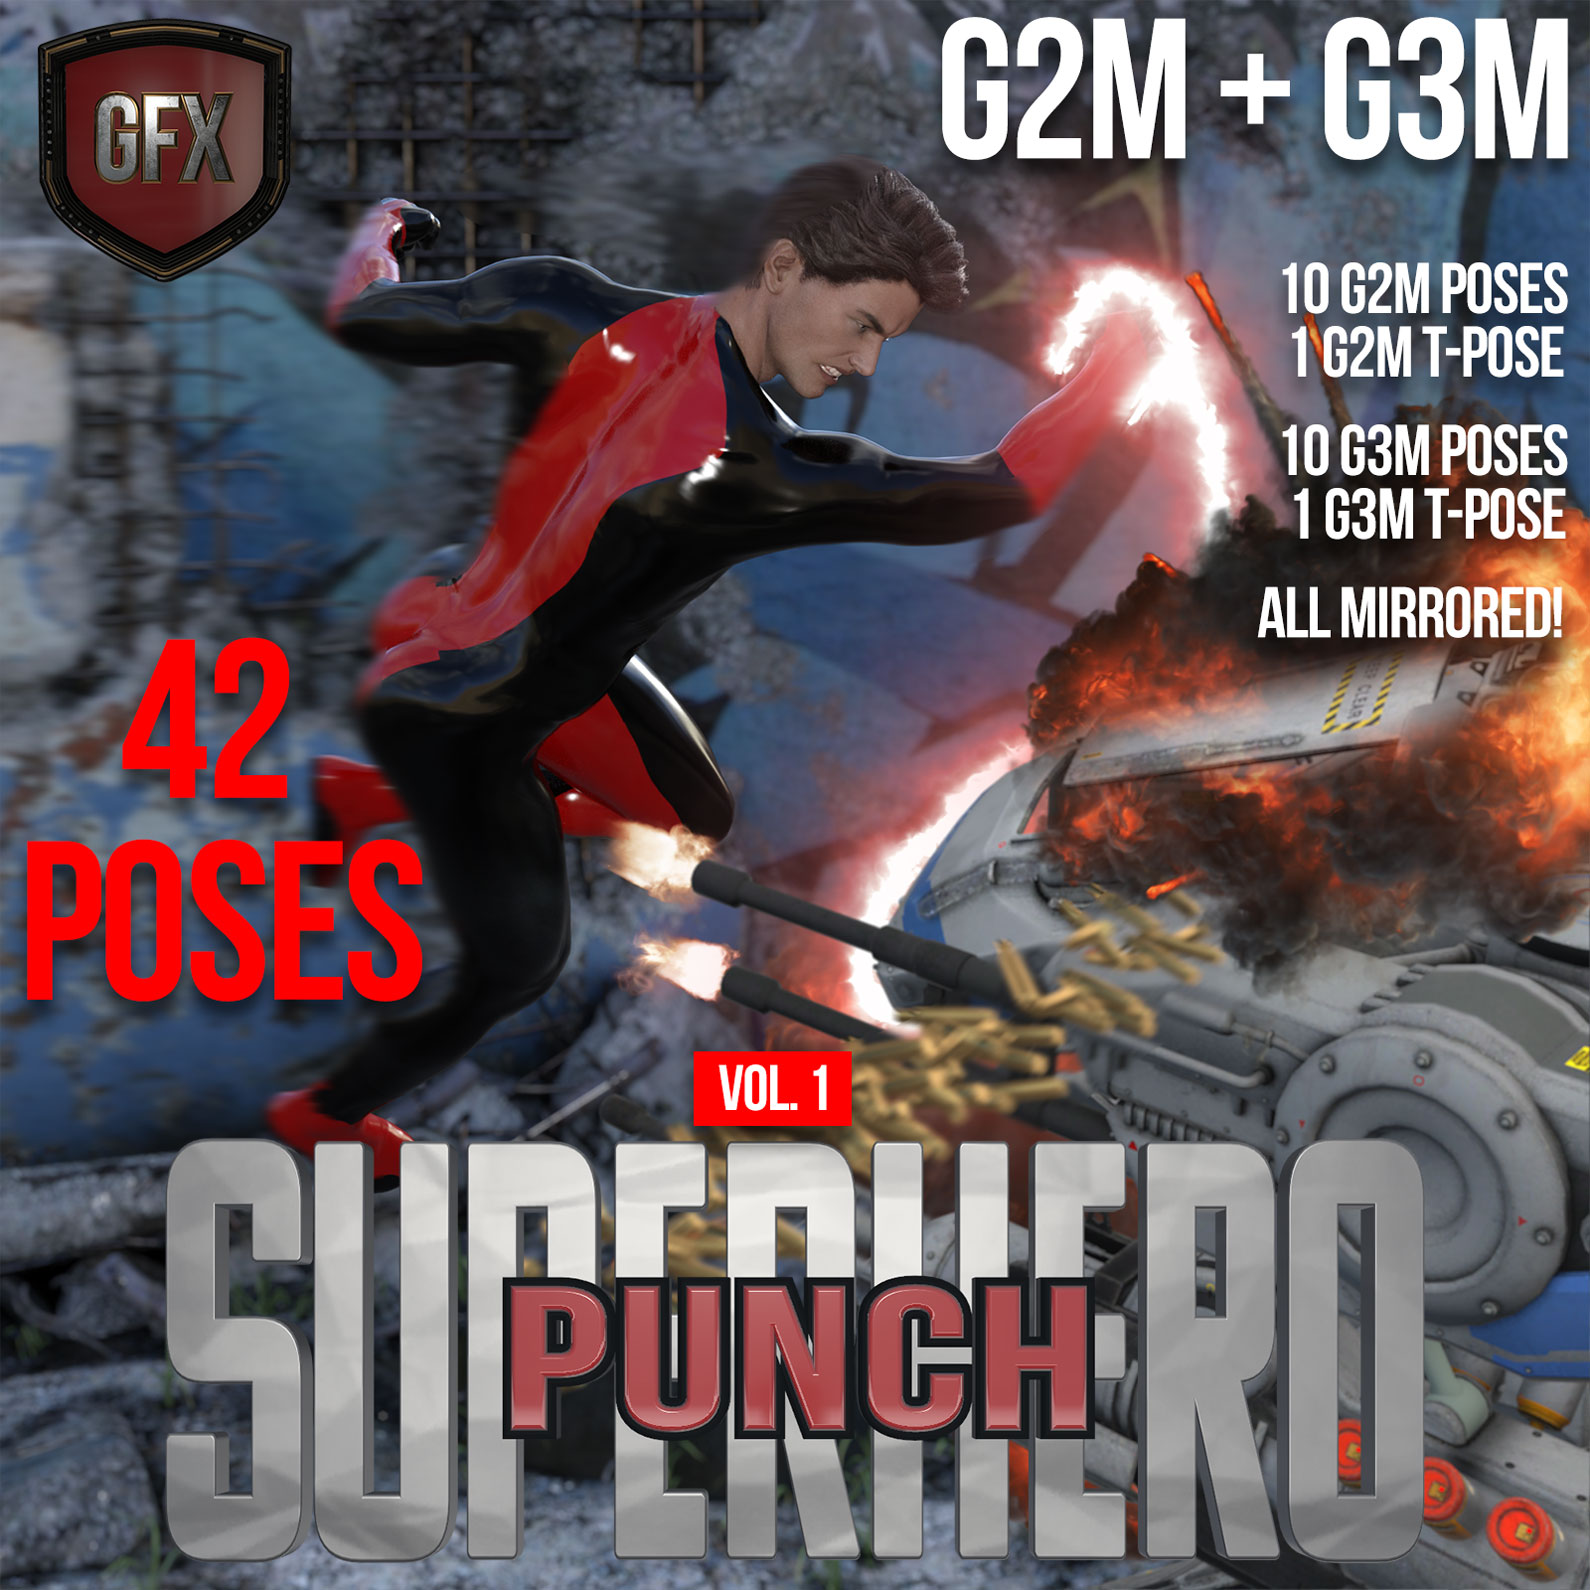 SuperHero Punch for G2M & G3M Volume 1 by GriffinFX